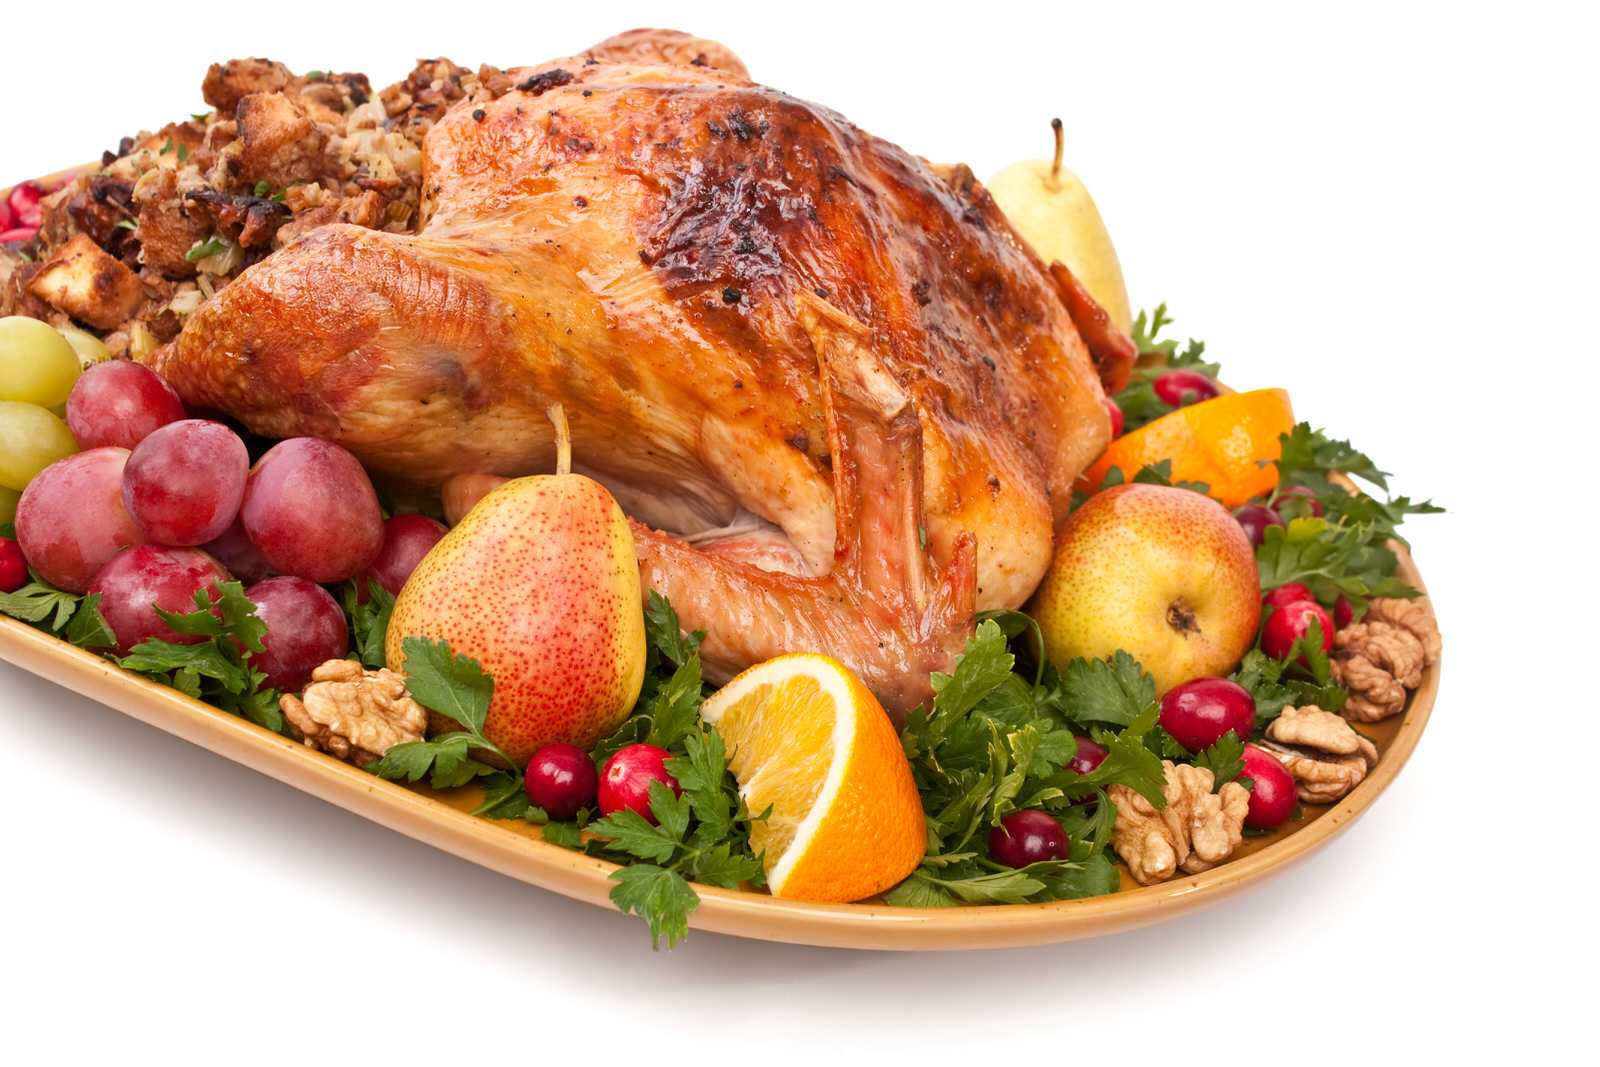 Sage and Butter Roasted Turkey with Pear-Walnut Stuffing